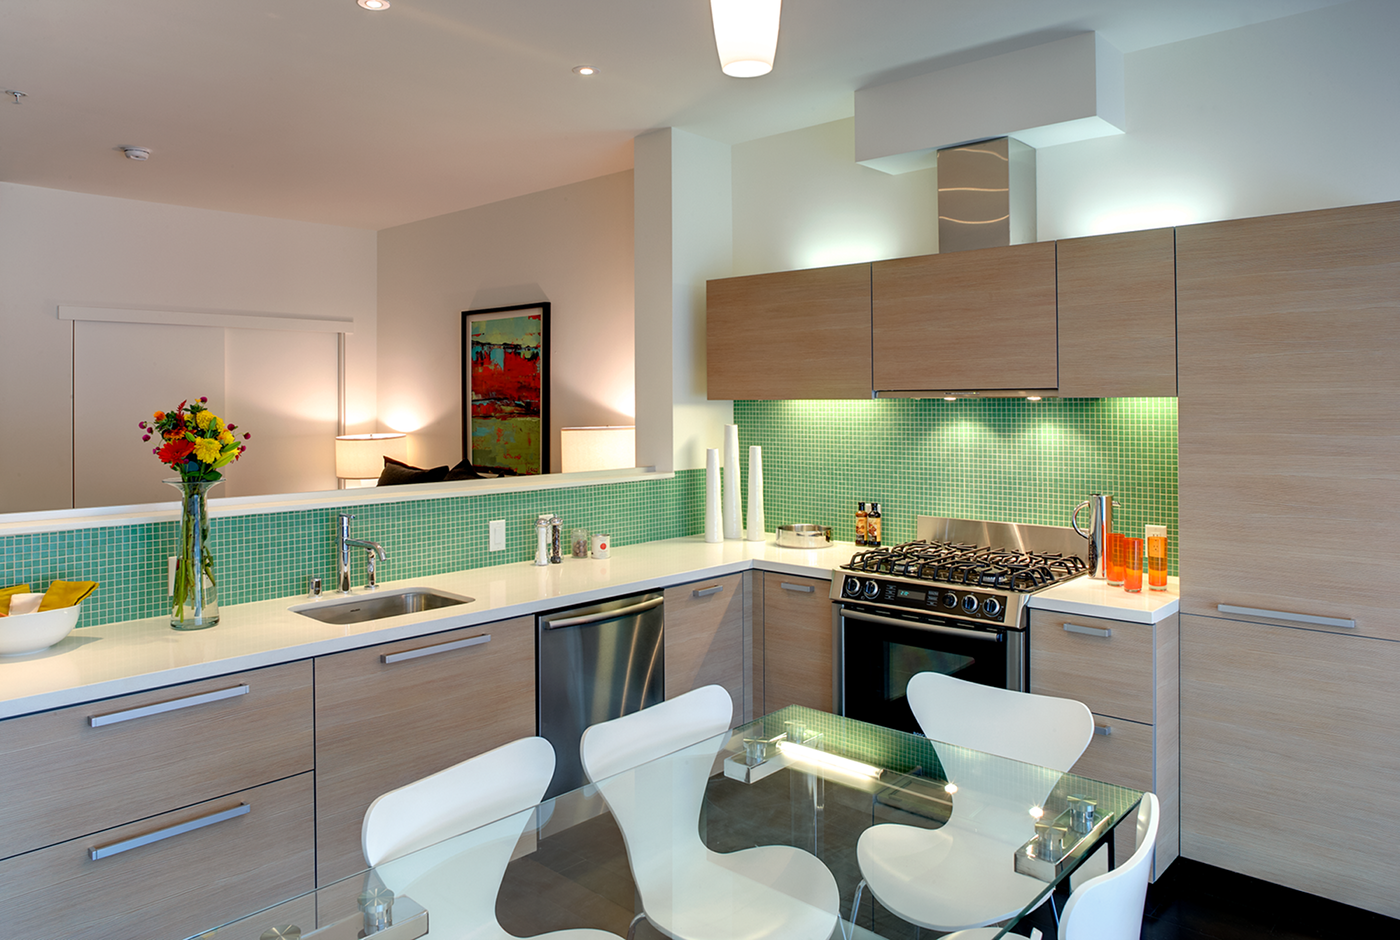 Fully Equipped Gourmet Kitchens At Berkeley Central, Berkeley, 94704